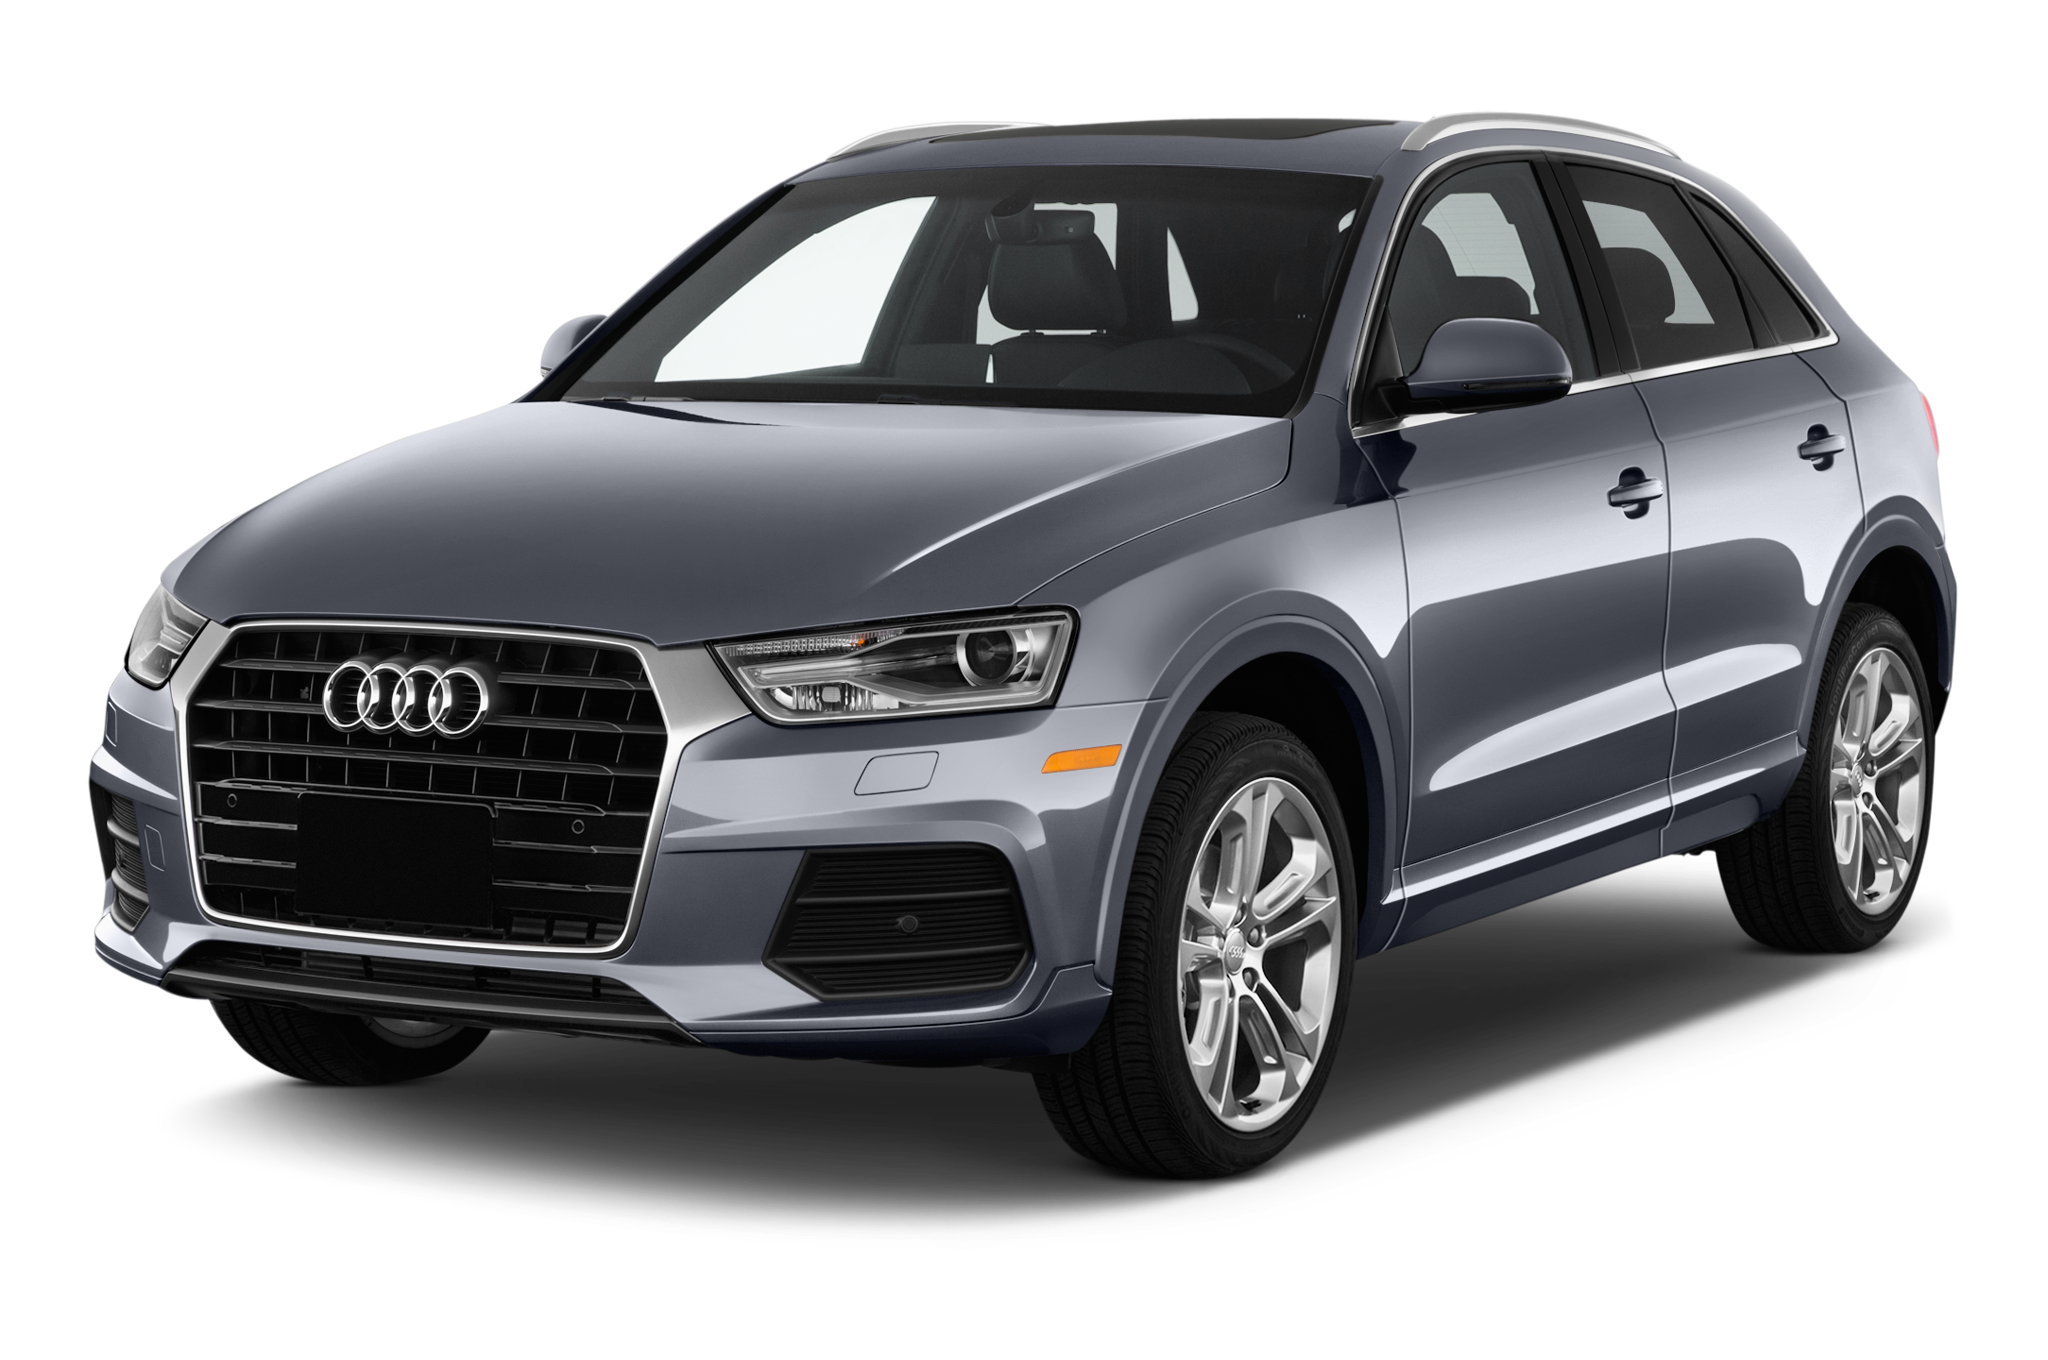 The Audi Q Is The Smallest SUV Httpswwwenginefitterscouk - Audi all series